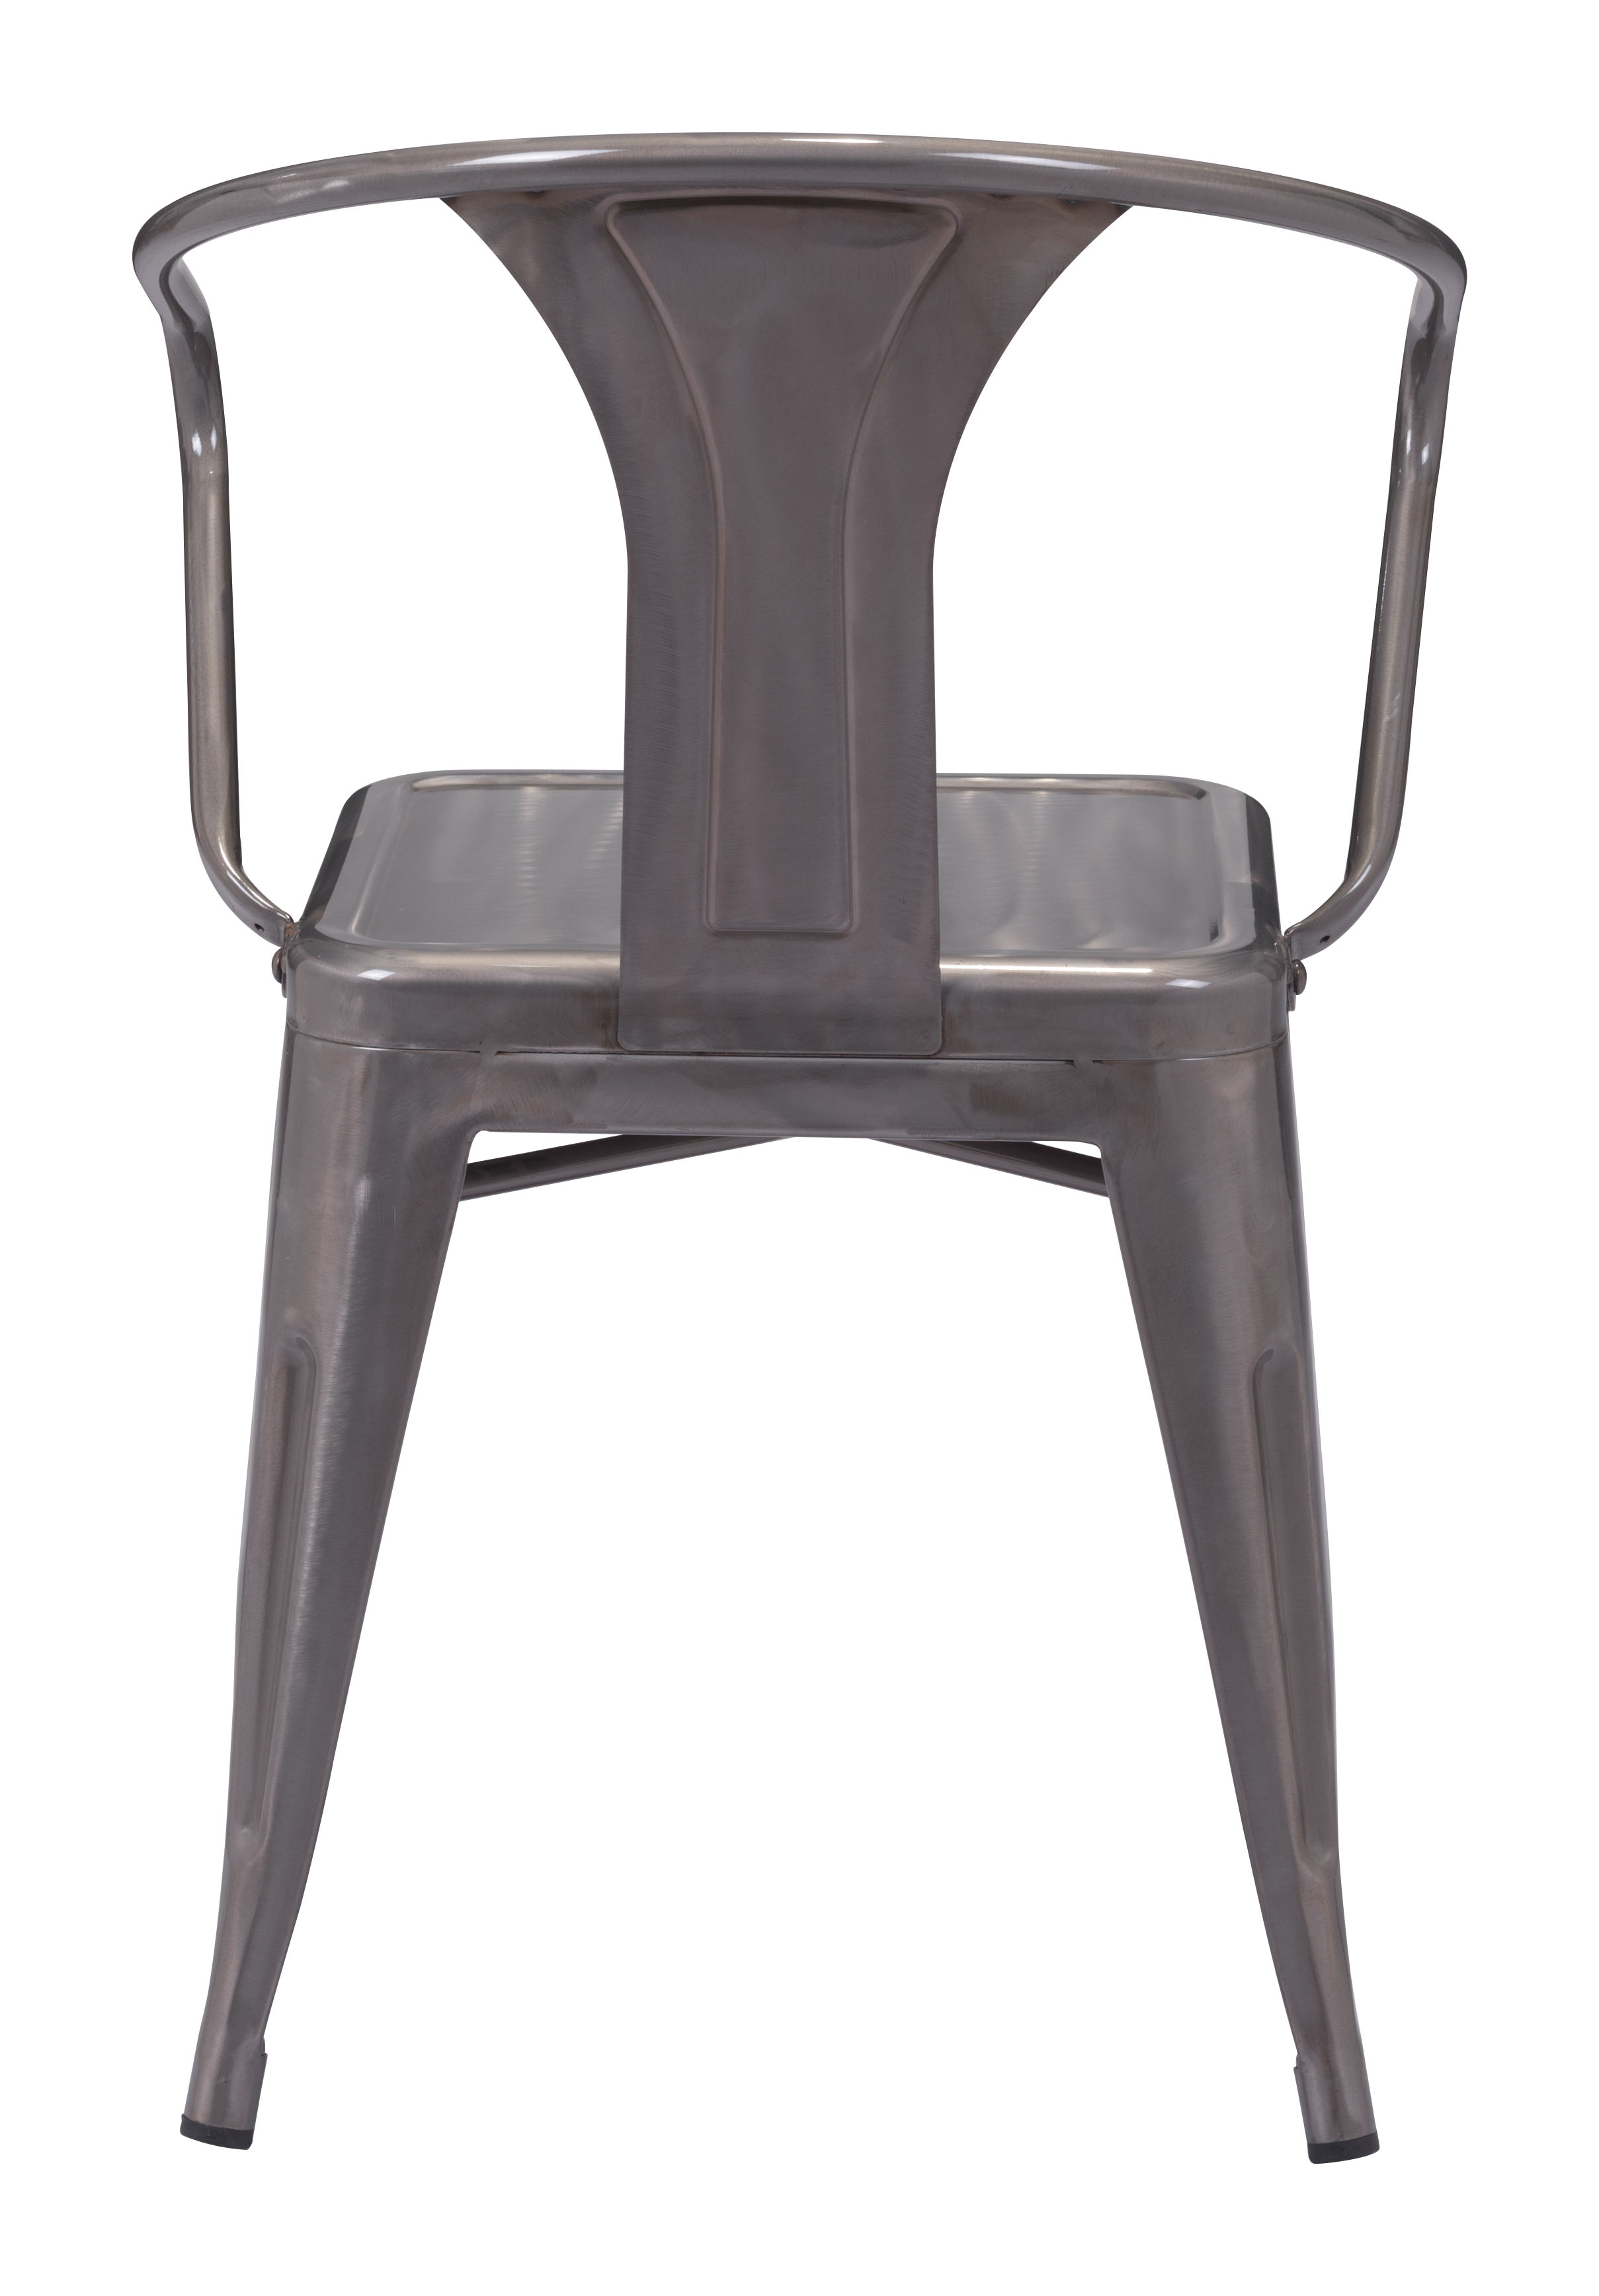 zuo-108145-helix-dining-chair-gunmetal.jpg